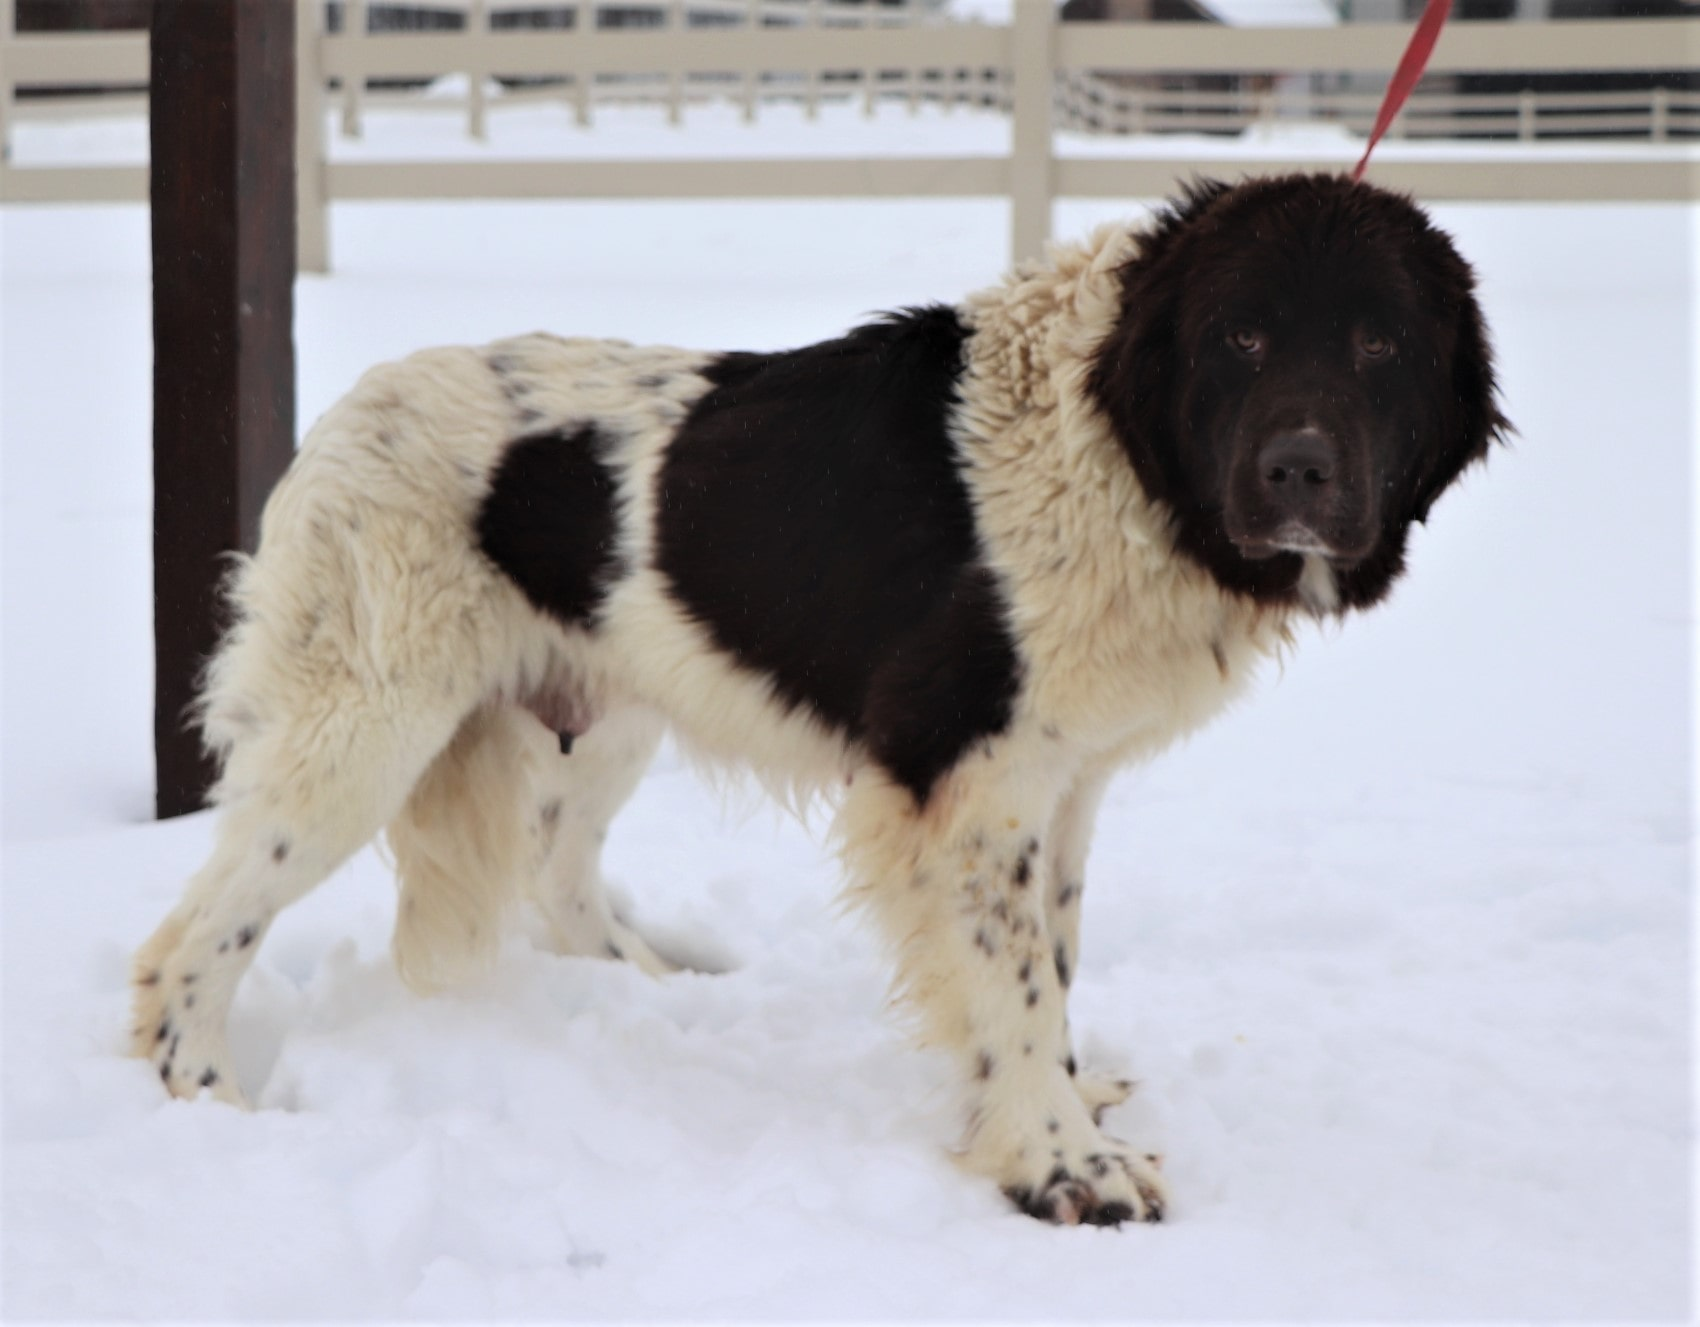 O'hanna, the Newfoundland mom